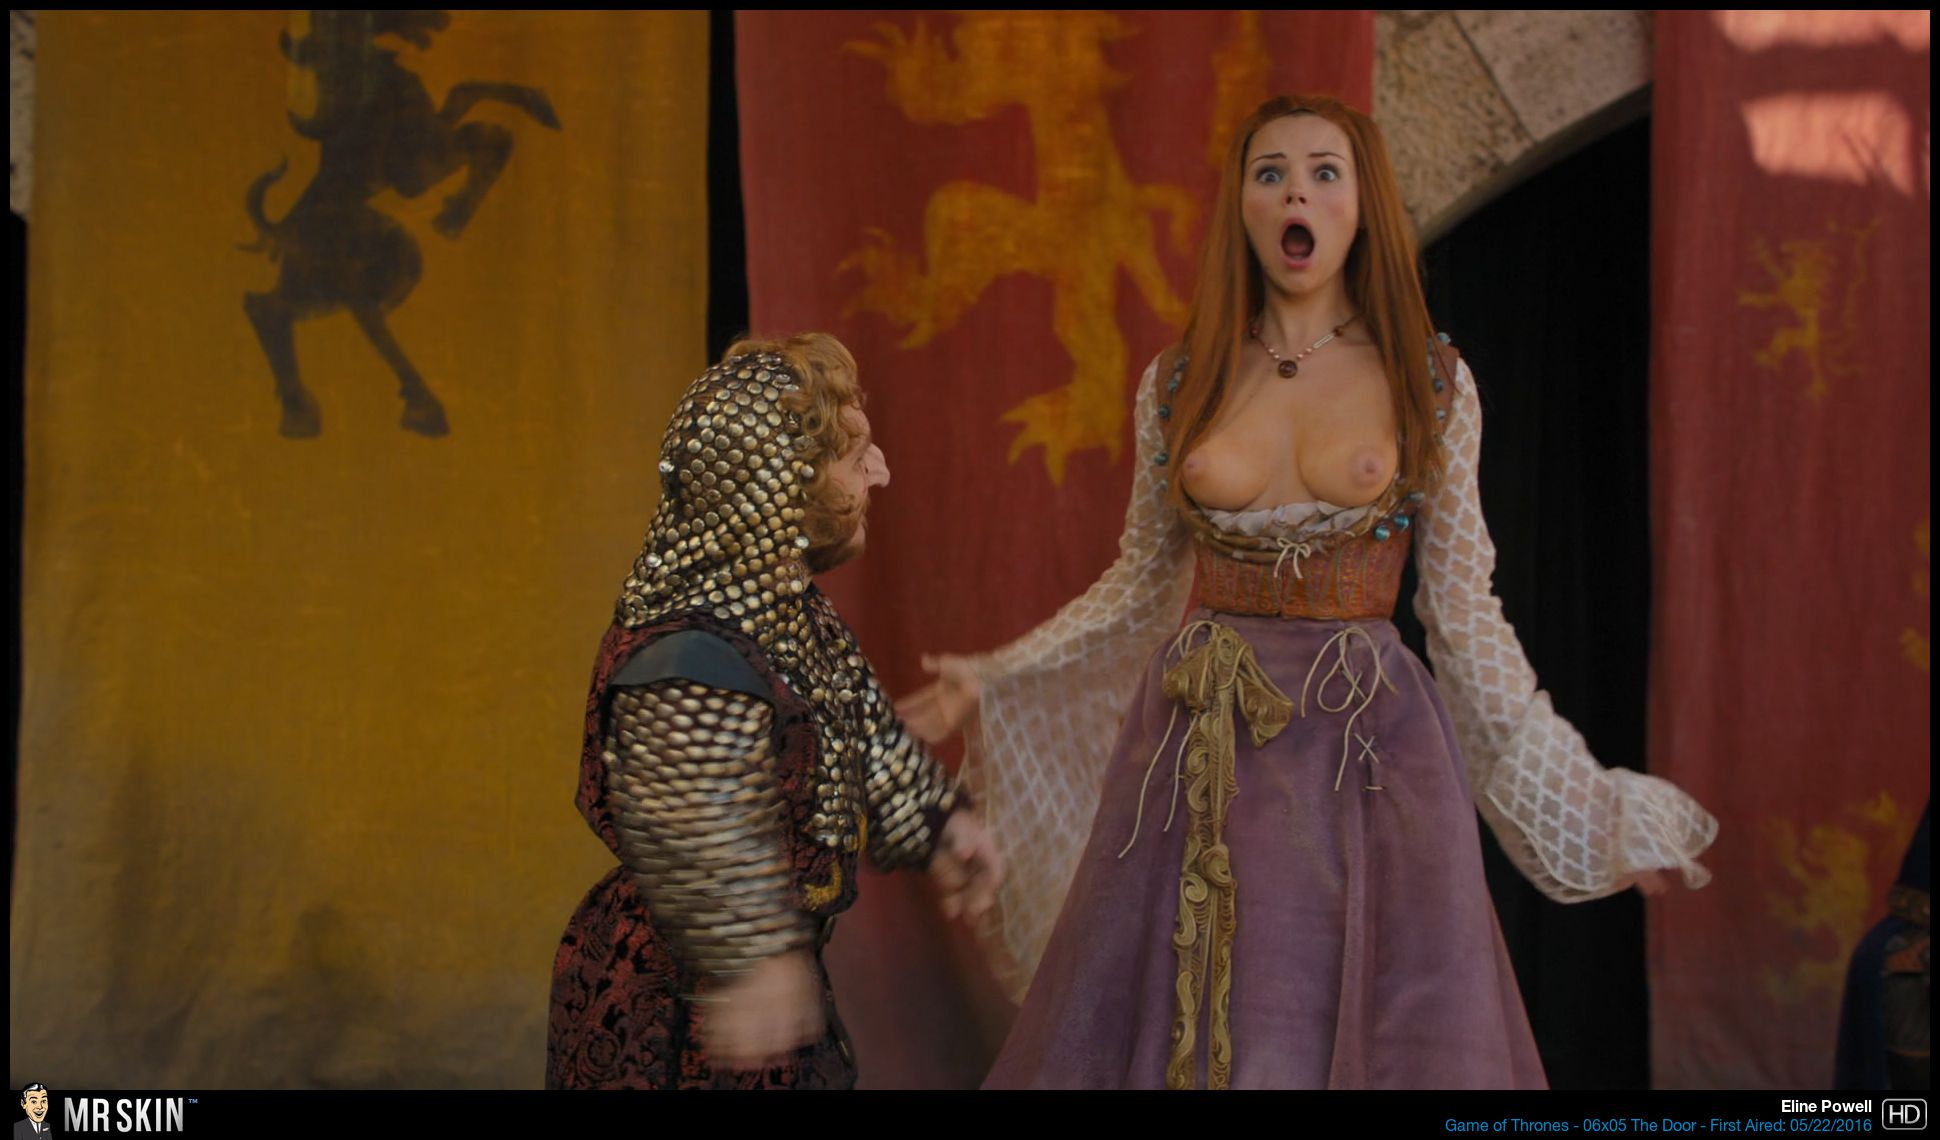 Best nude scenes in game of thrones